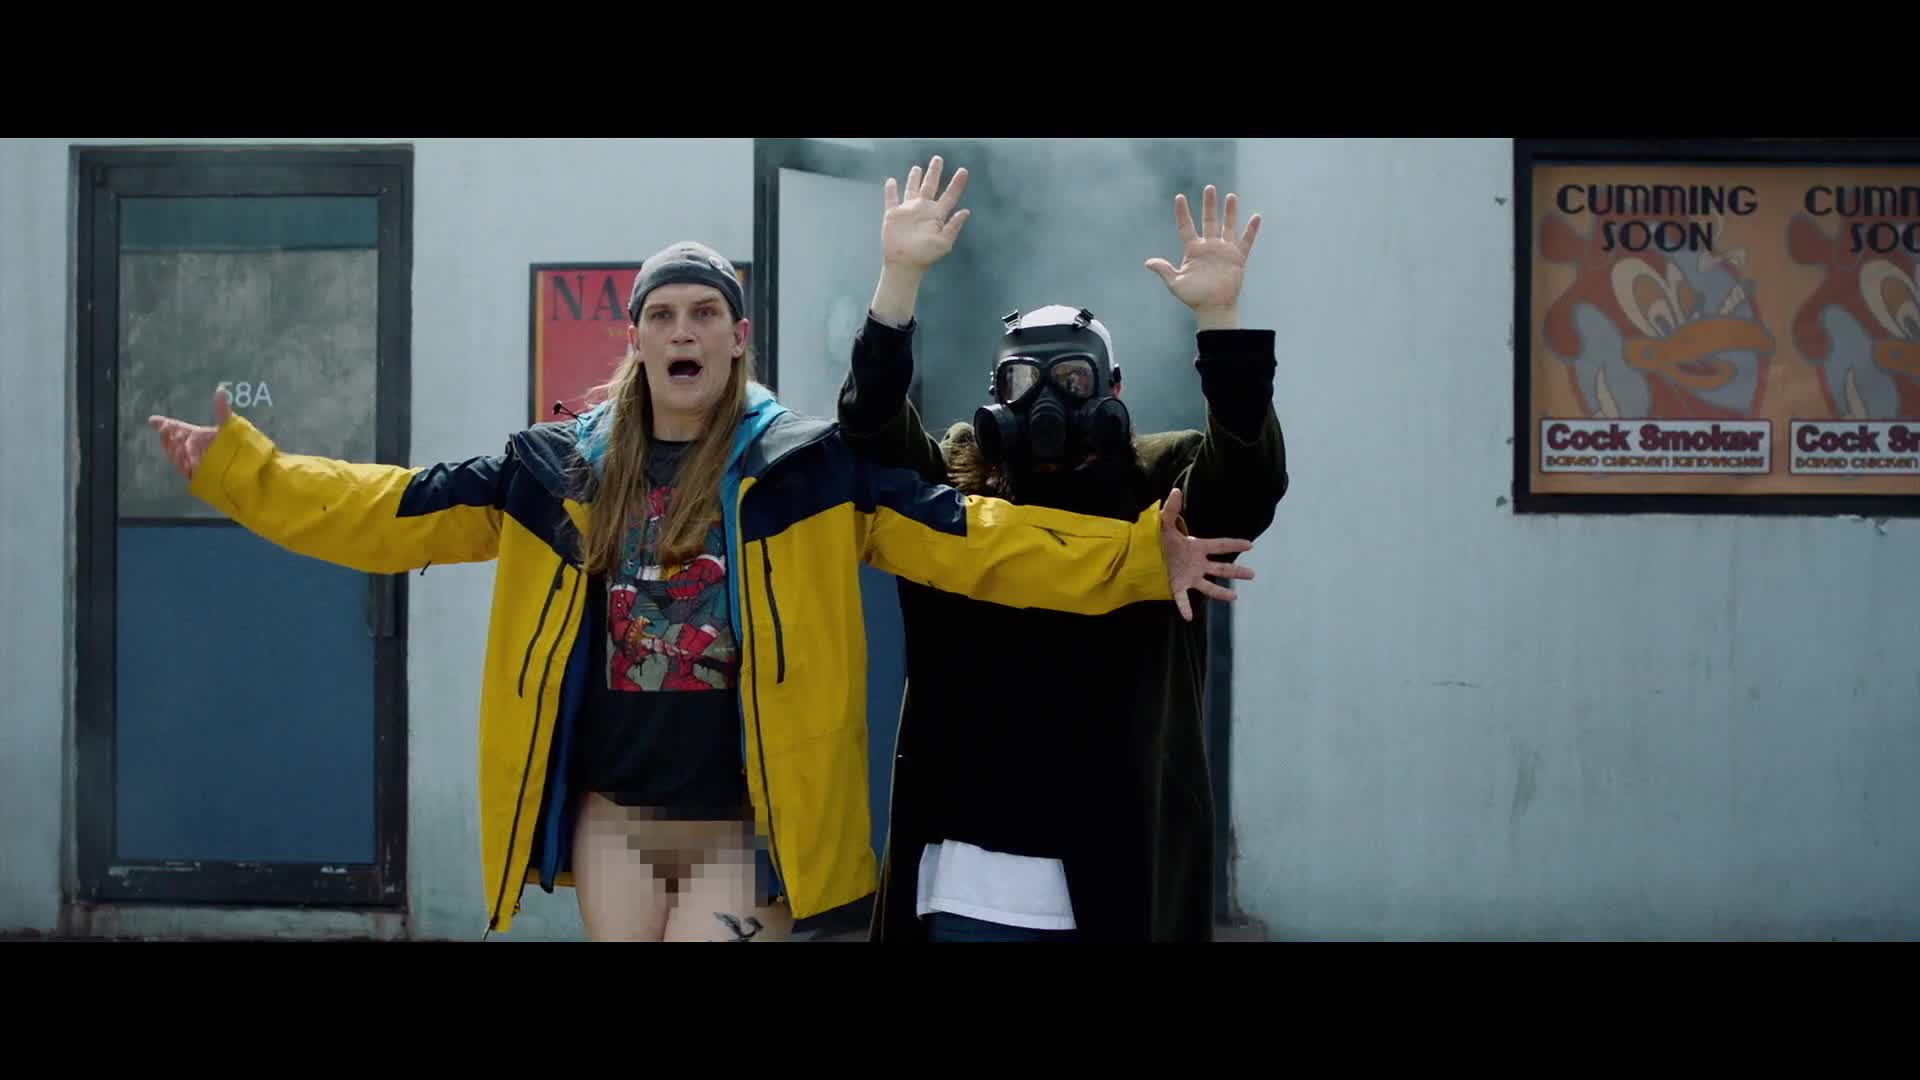 Jay and Silent Bob Reboot - Official Red Band Trailer [HD] screen capture